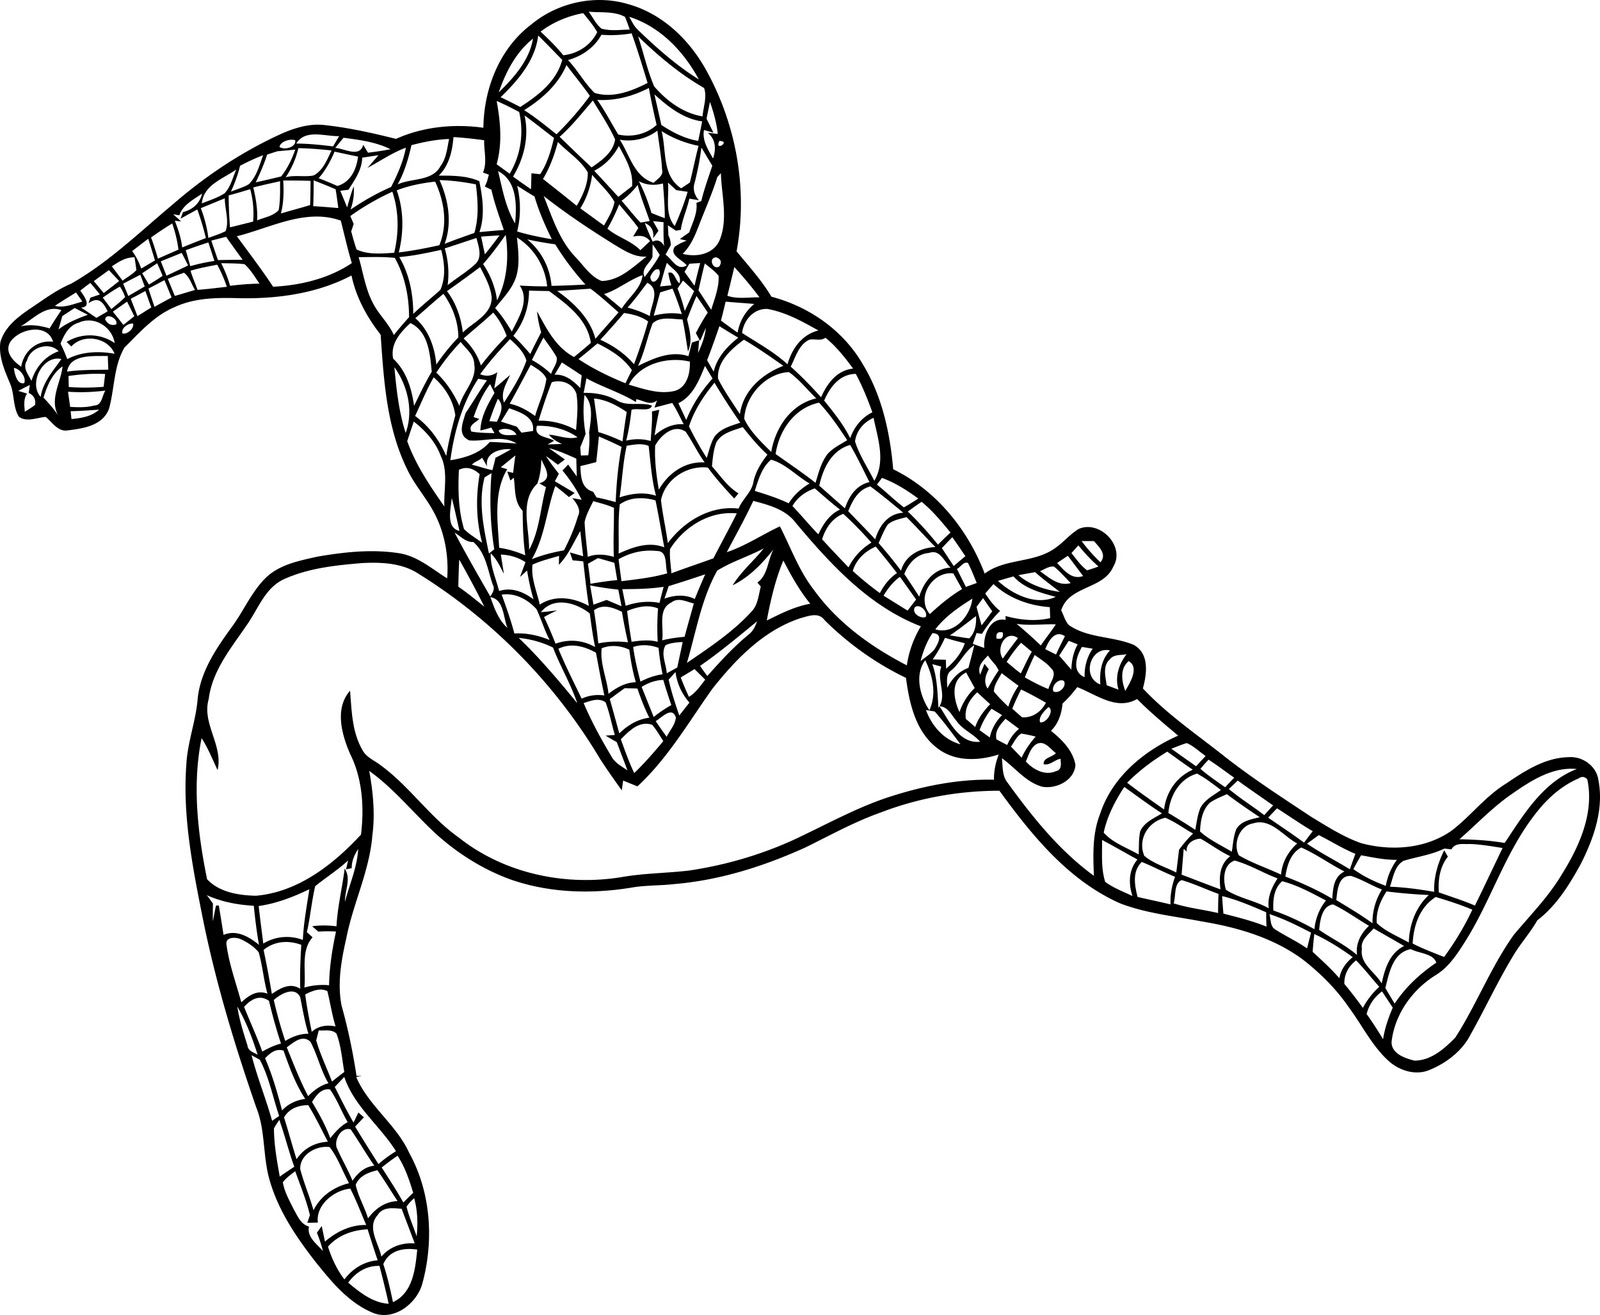 Printable Spiderman Coloring Pages - Free Printable Spiderman Coloring Pages for Kids